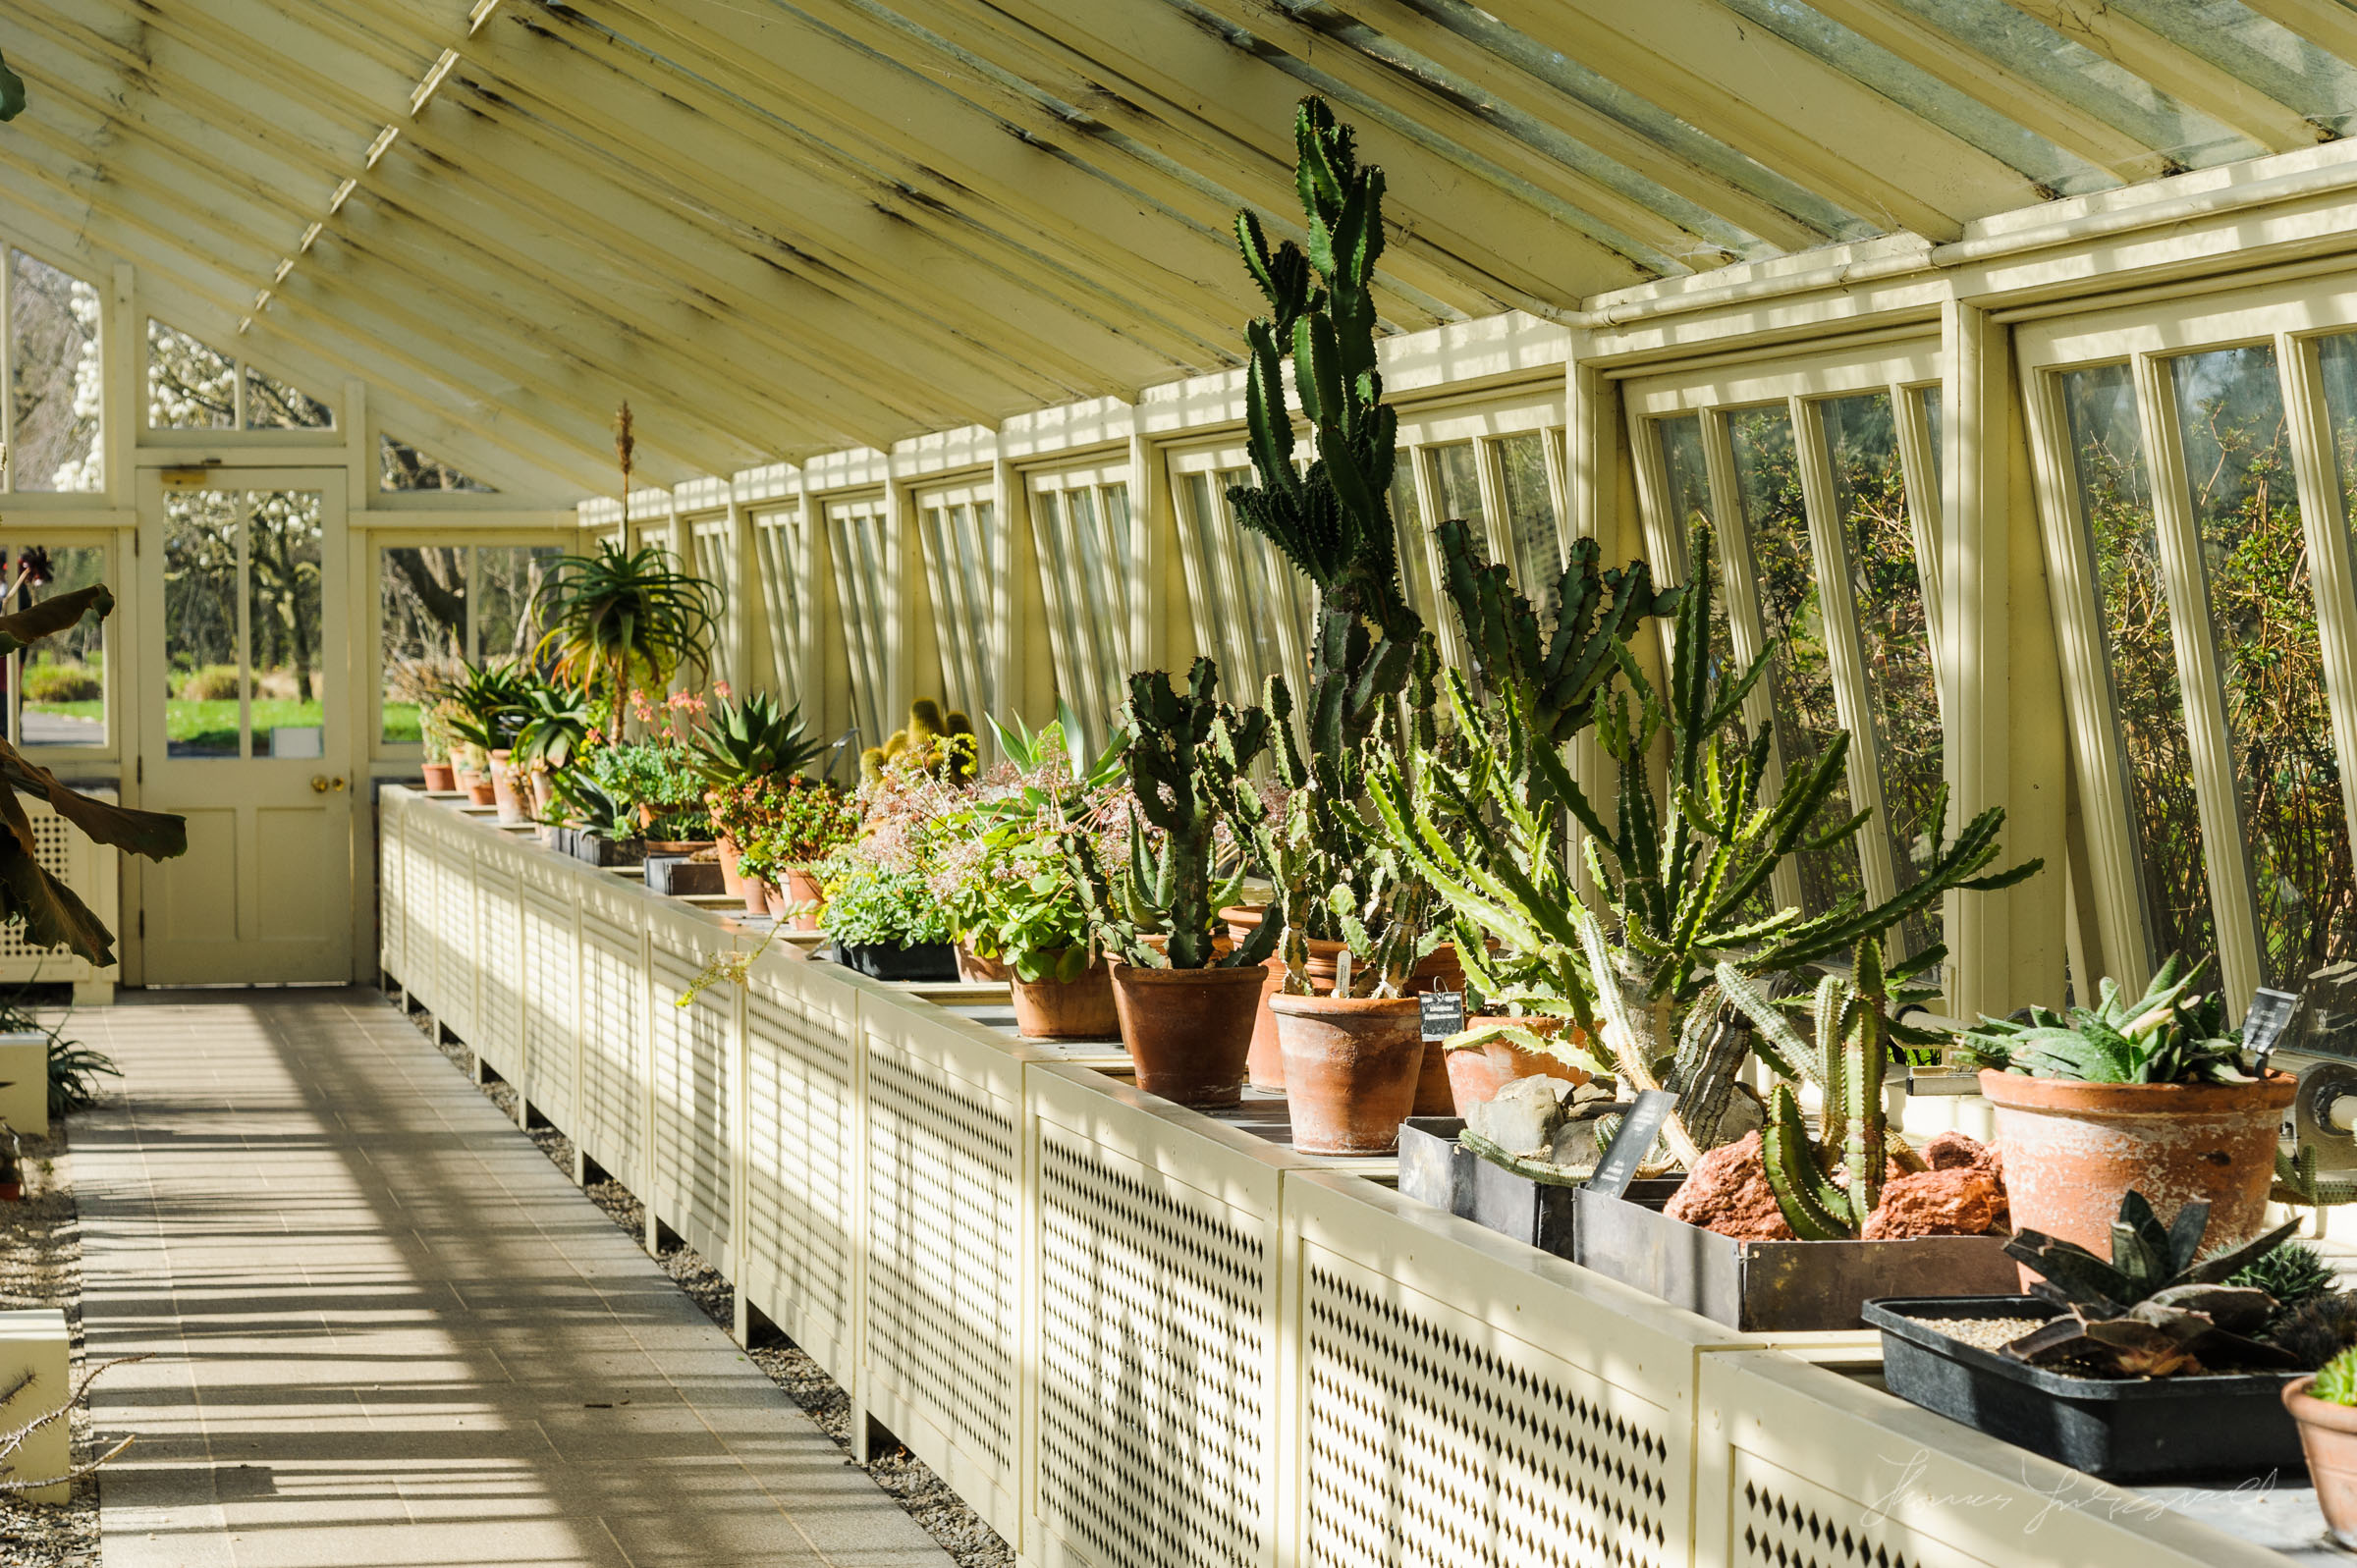 Inside the Ornate Greenhouses at the Botanic Gardens